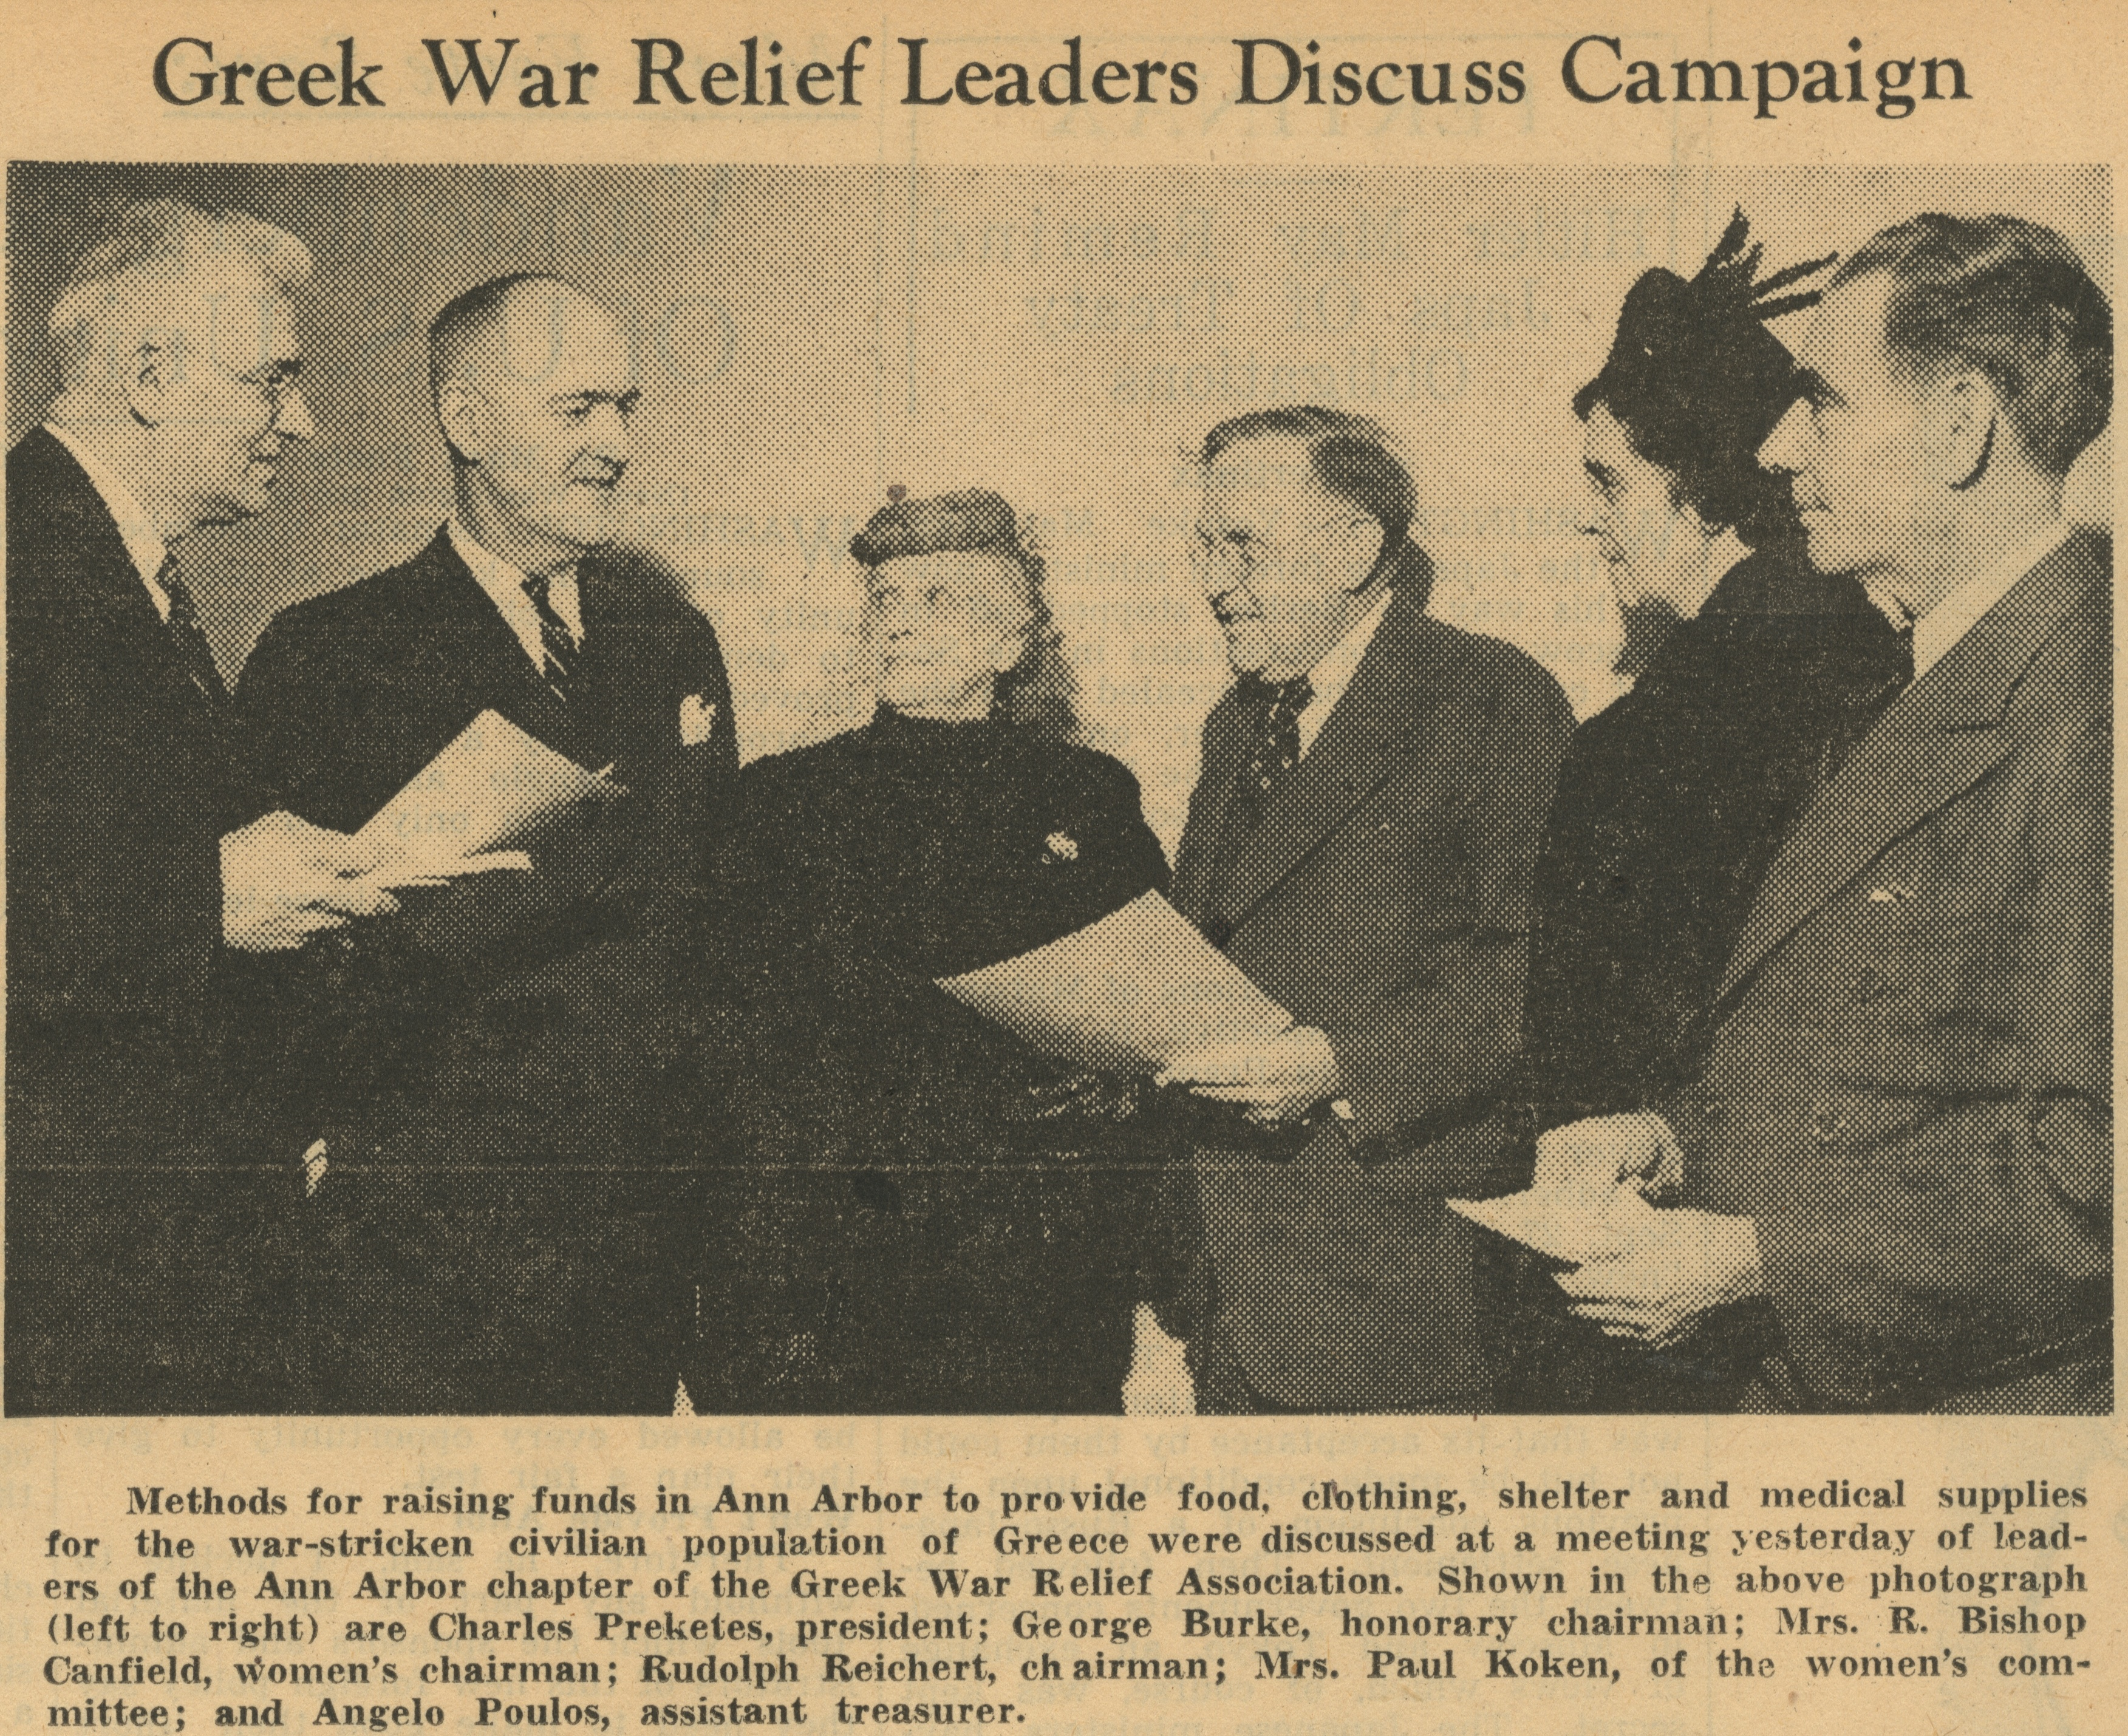 Greek War Relief Leaders Discuss Campaign image